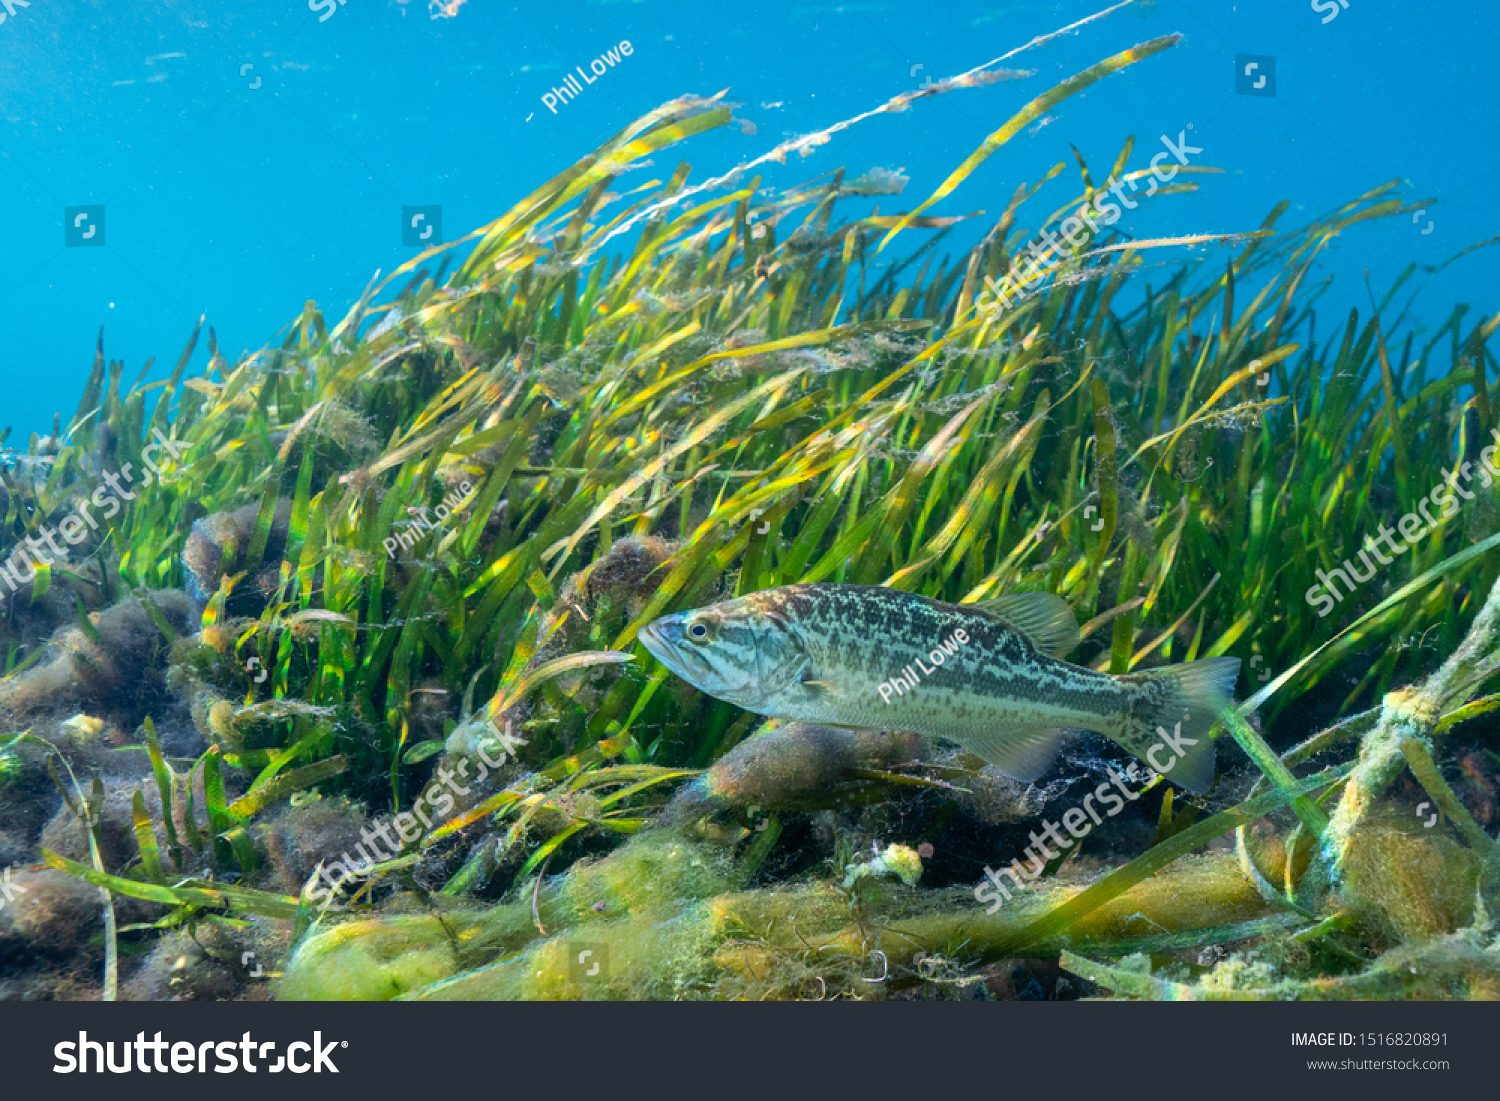 stock-photo-a-young-largemouth-bass-micr